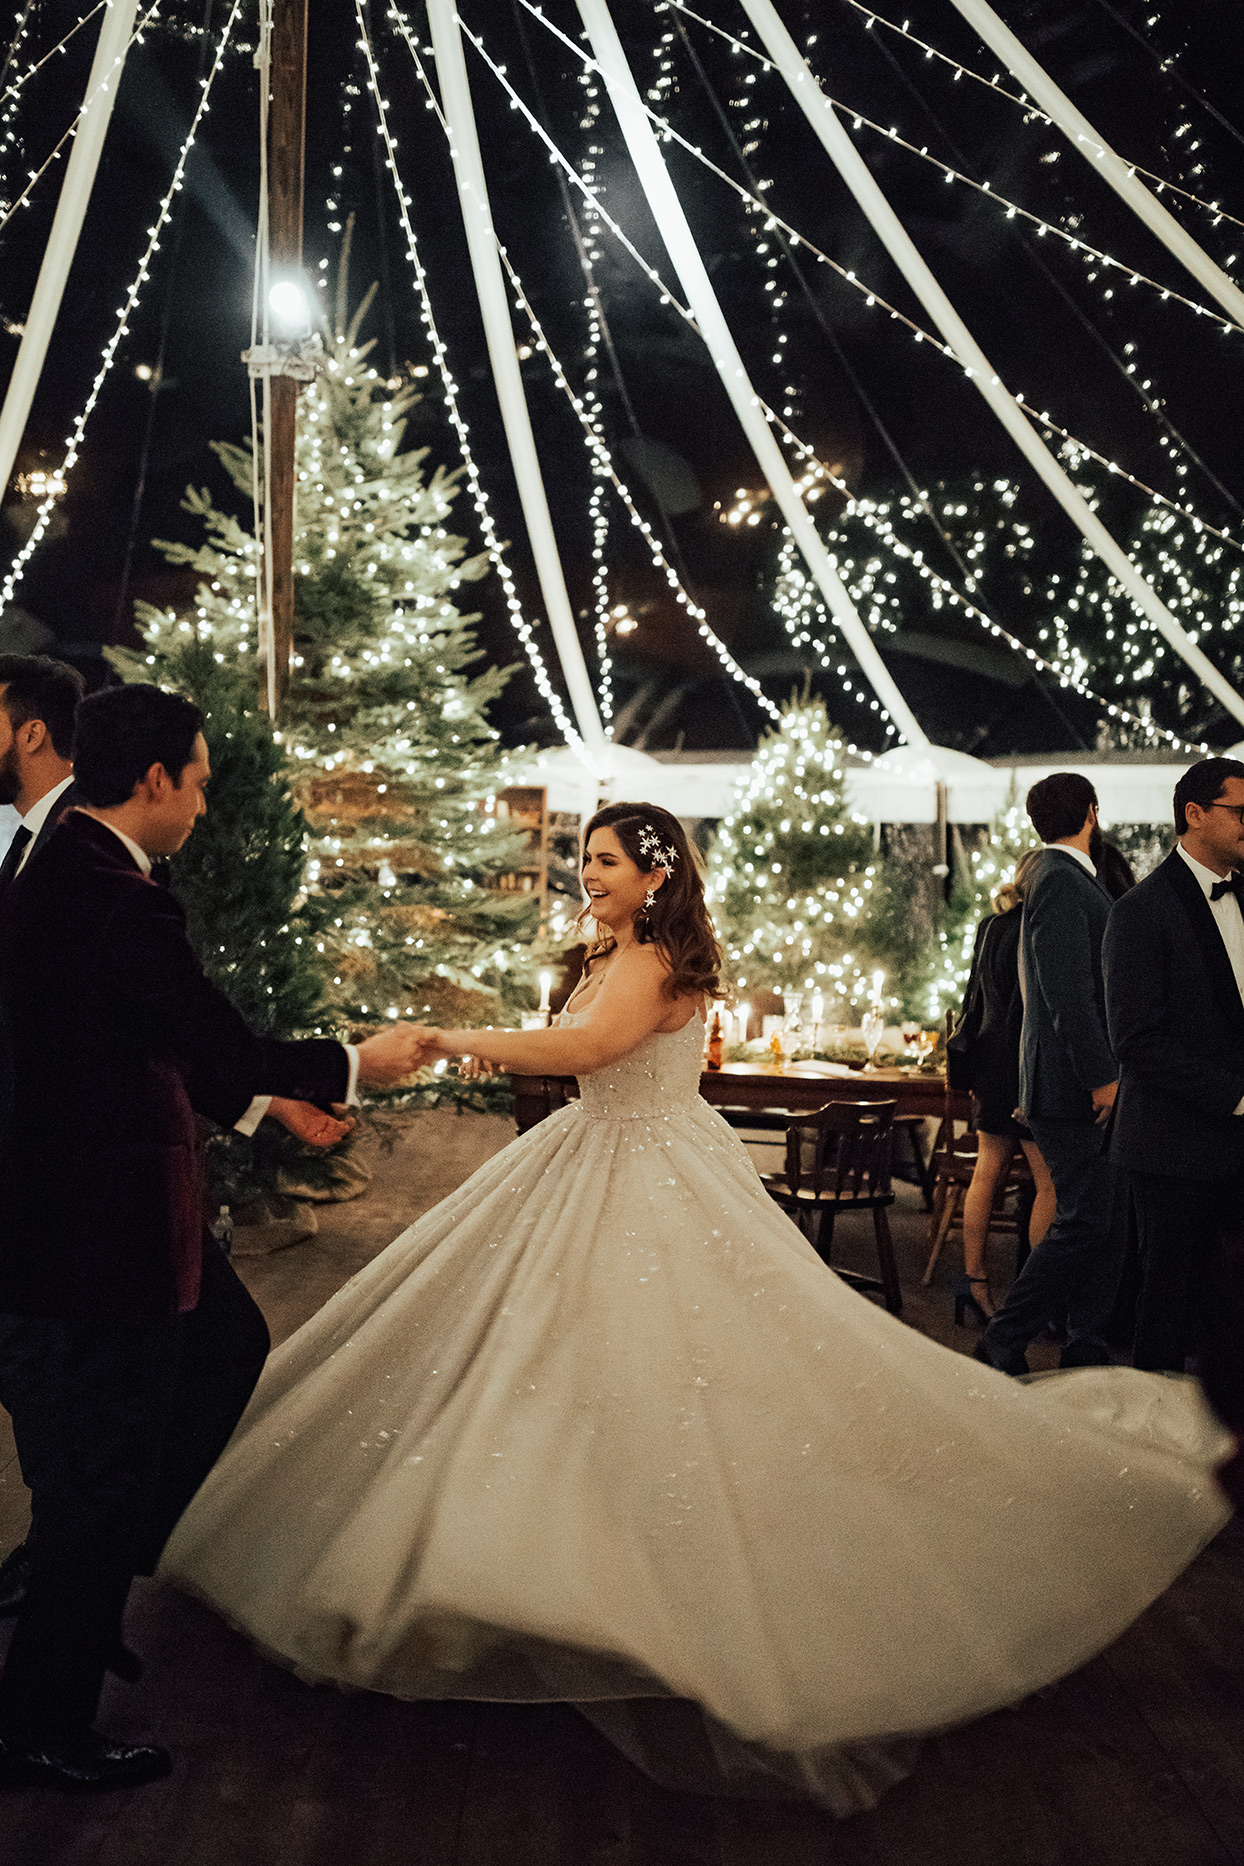 noelle danny wedding first dance bride twirling under lit tent